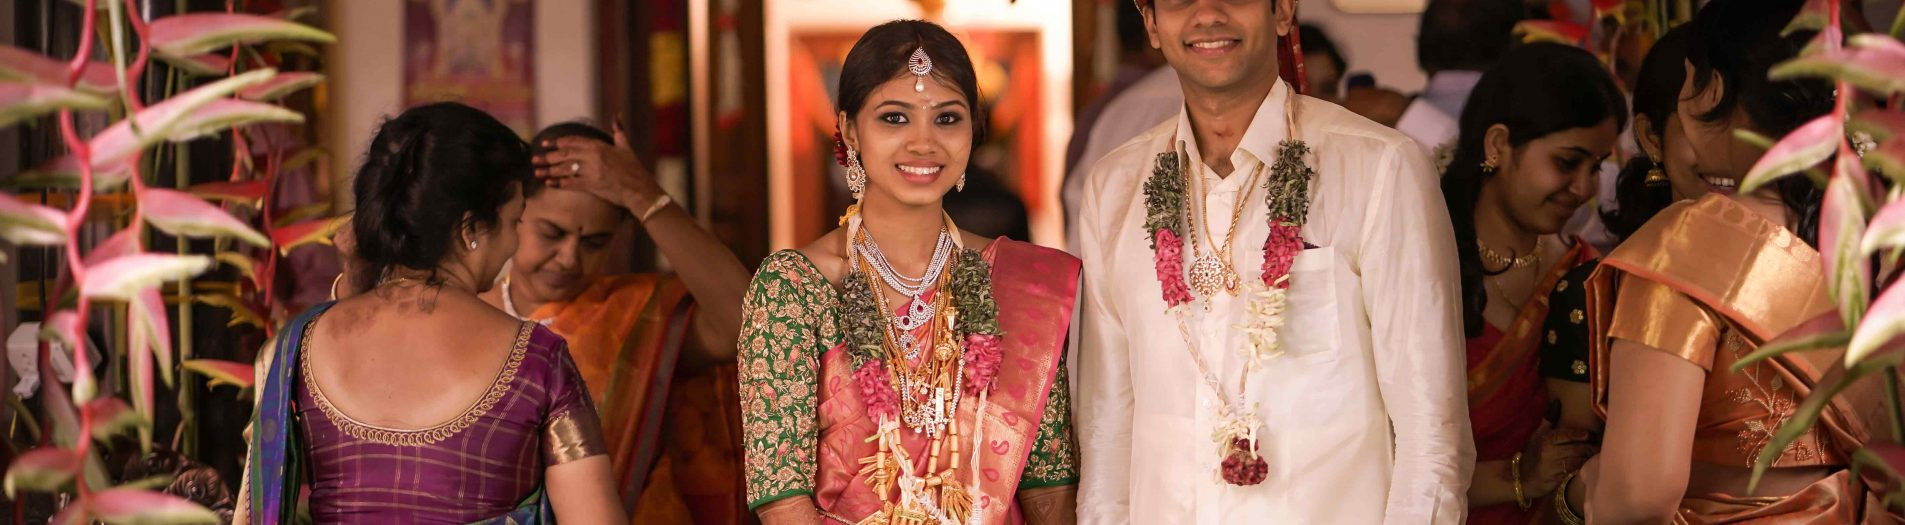 This Elegant and Traditional Chettiyar Wedding of Meenakshi and Kannan was held on 28th June 2017 at Mathurai. It was a memorable and a unique Wedding Ceremony, totally different from other Indian Weddings. Meenakshi and Kannan, very sweet couple, pleasant and had a smiling face always. The rituals began from the Welcoming Ceremony of the Groom. The most interesting part is the rituals and games between families and friends. Special Thanks to our couple Meenakshi and Kannan for choosing Weva to capture your precious moments..